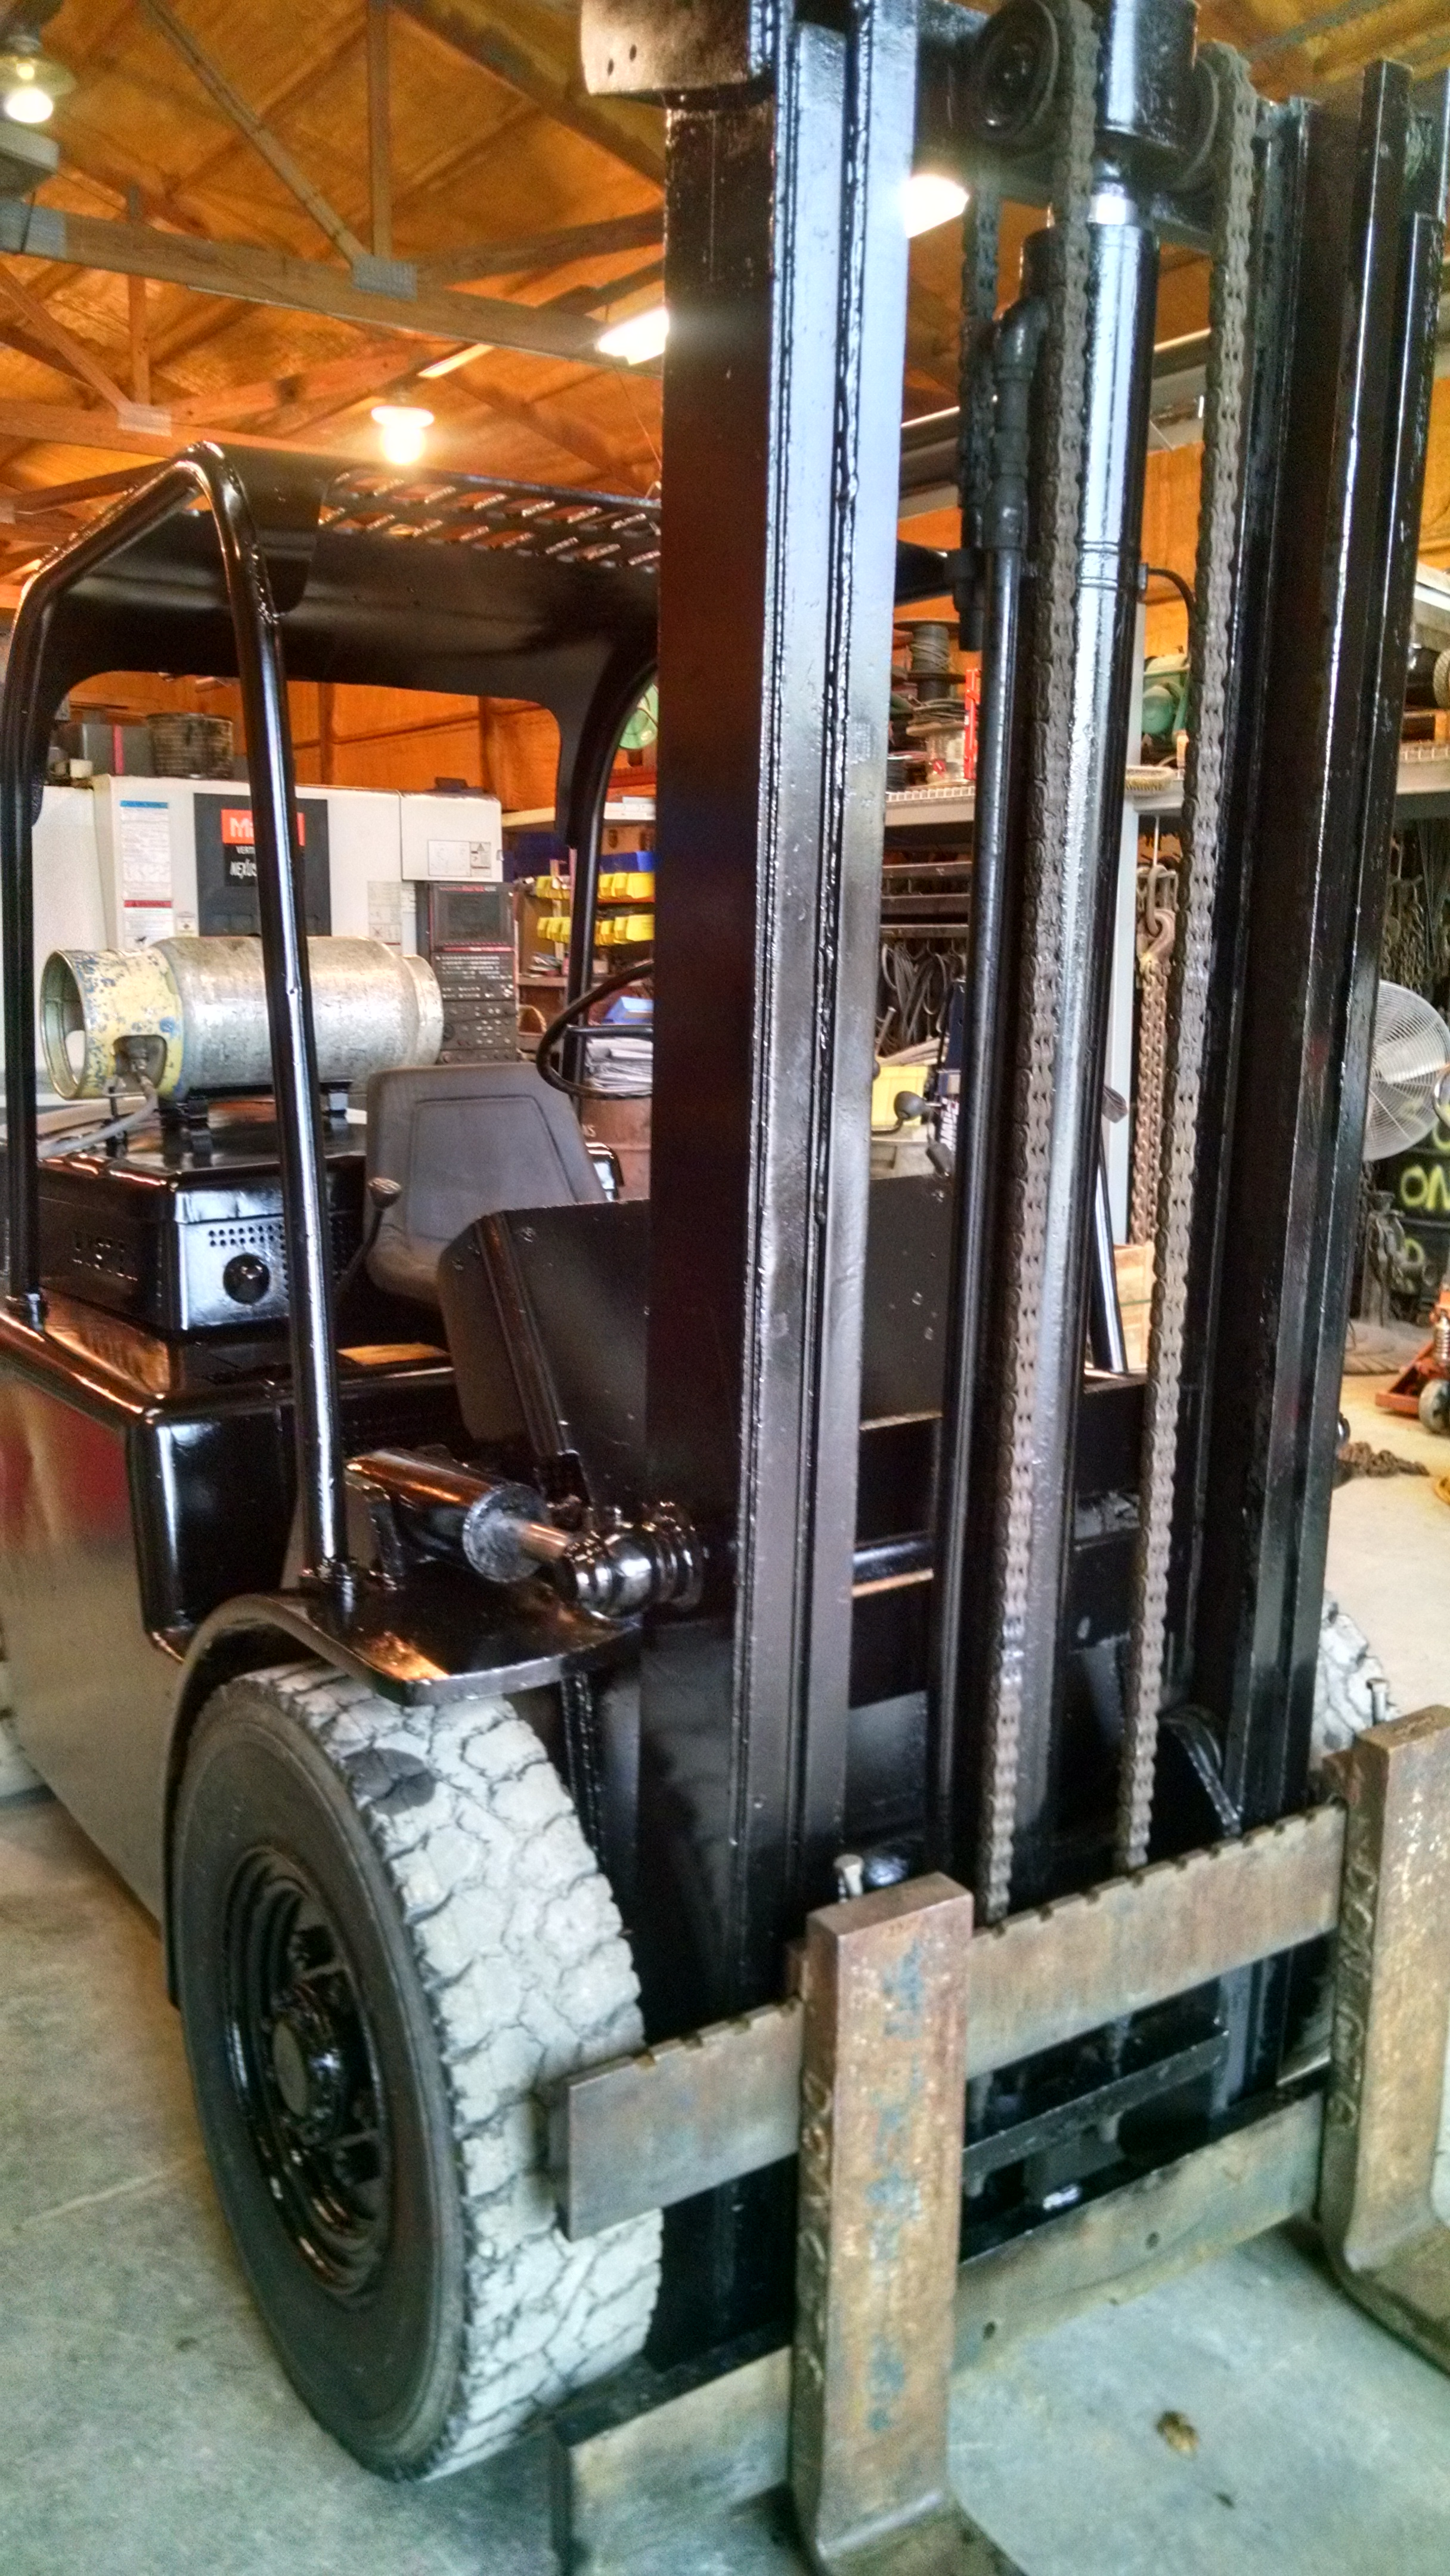 (1) PREOWNED HYSTER PNEUMATIC FORKLIFT UNIT# 40